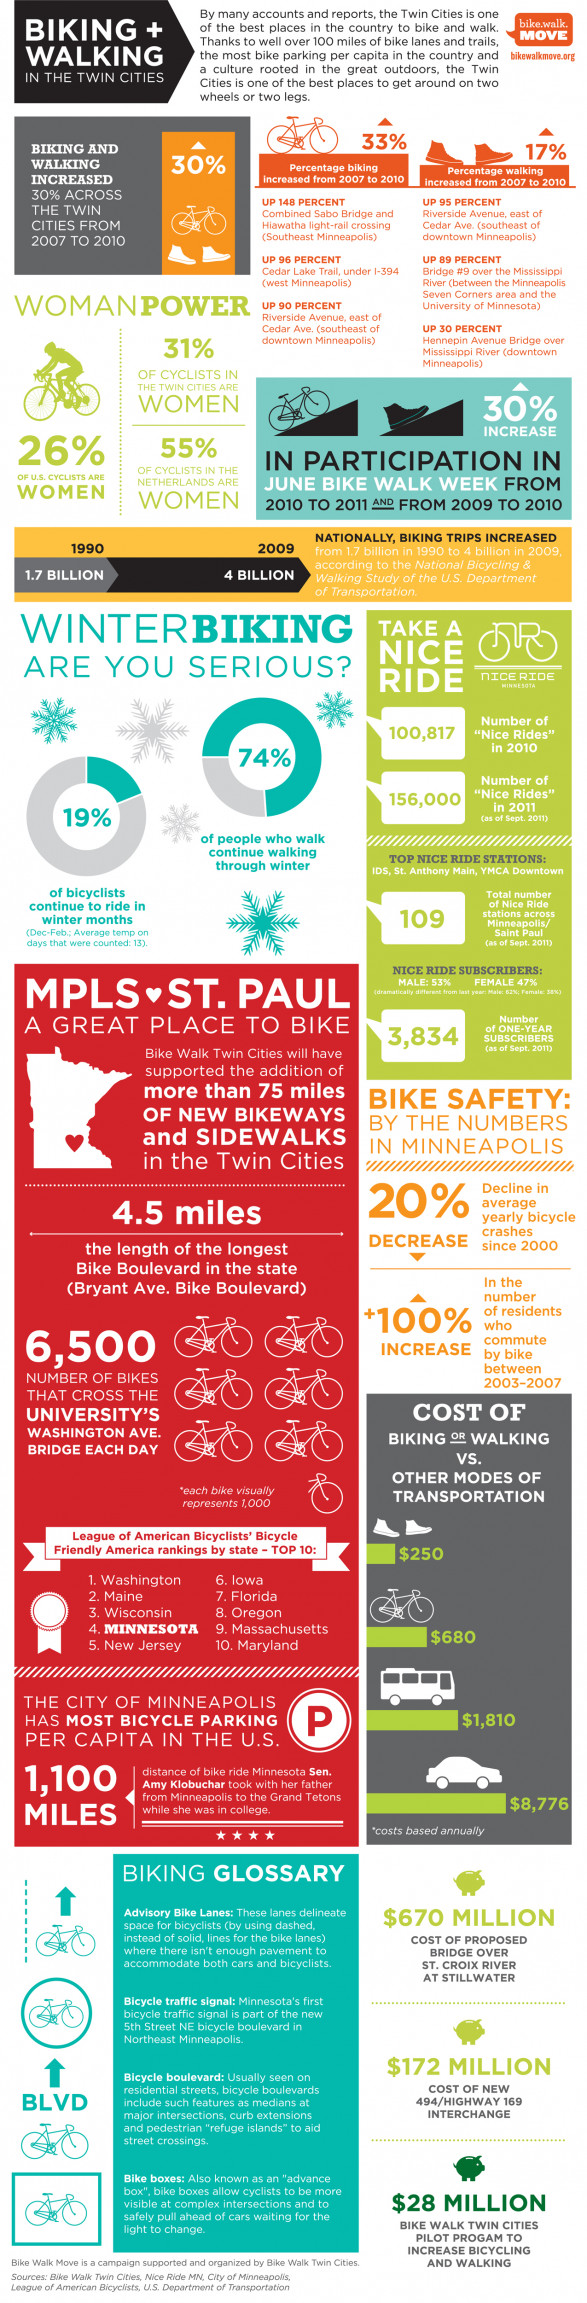 Infographic highlights biking, walking in Twin Cities